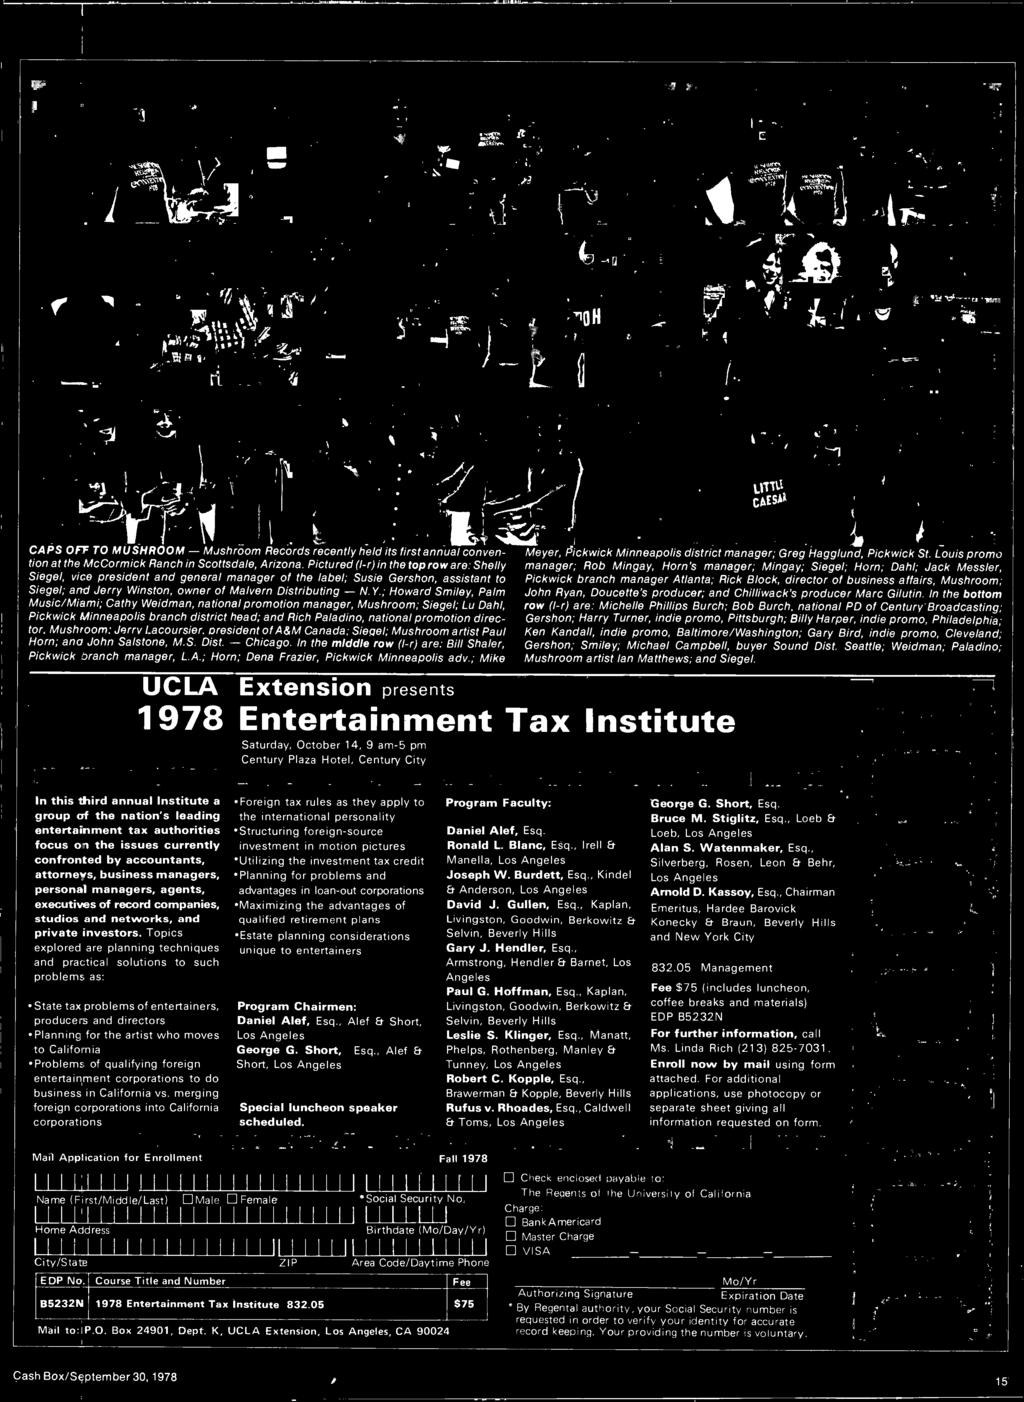 ; Mike UCLA Extension presents 1978 Entertainment Tax Institute Saturday, October 14, 9 am -5 pm Century Plaza Hotel, Century City a Meyer, Pickwick Minneapolis district manager; Greg Hagglund,